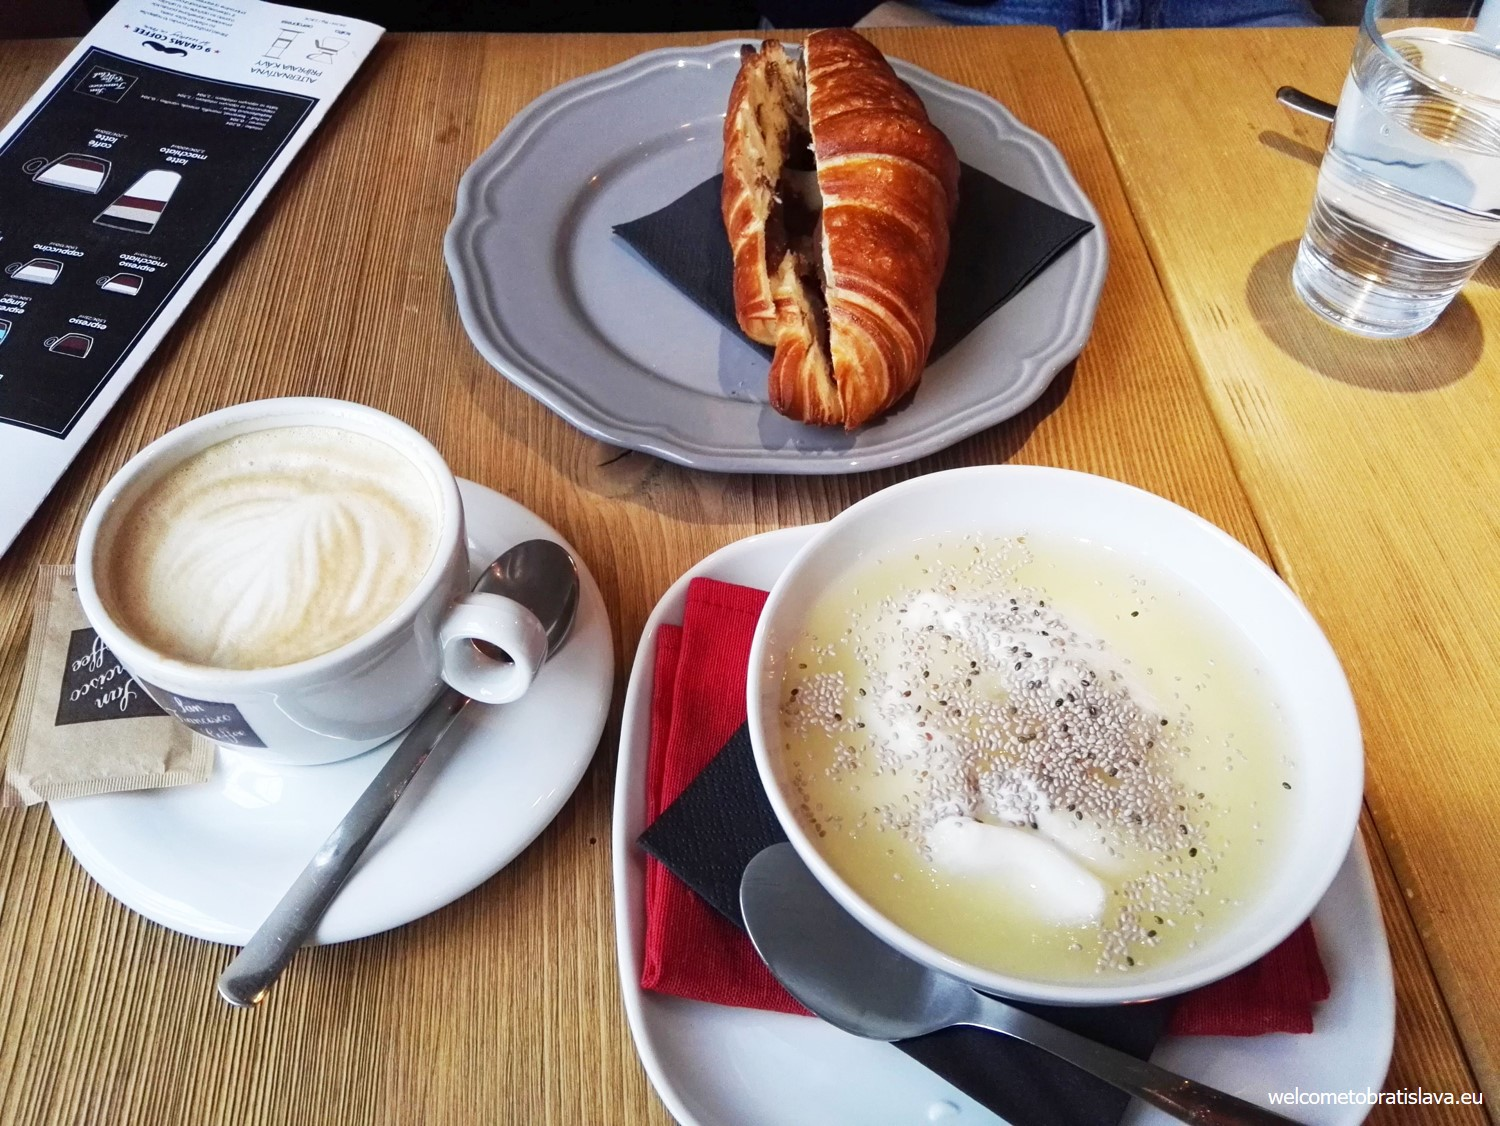 Breakfast at W Cafe